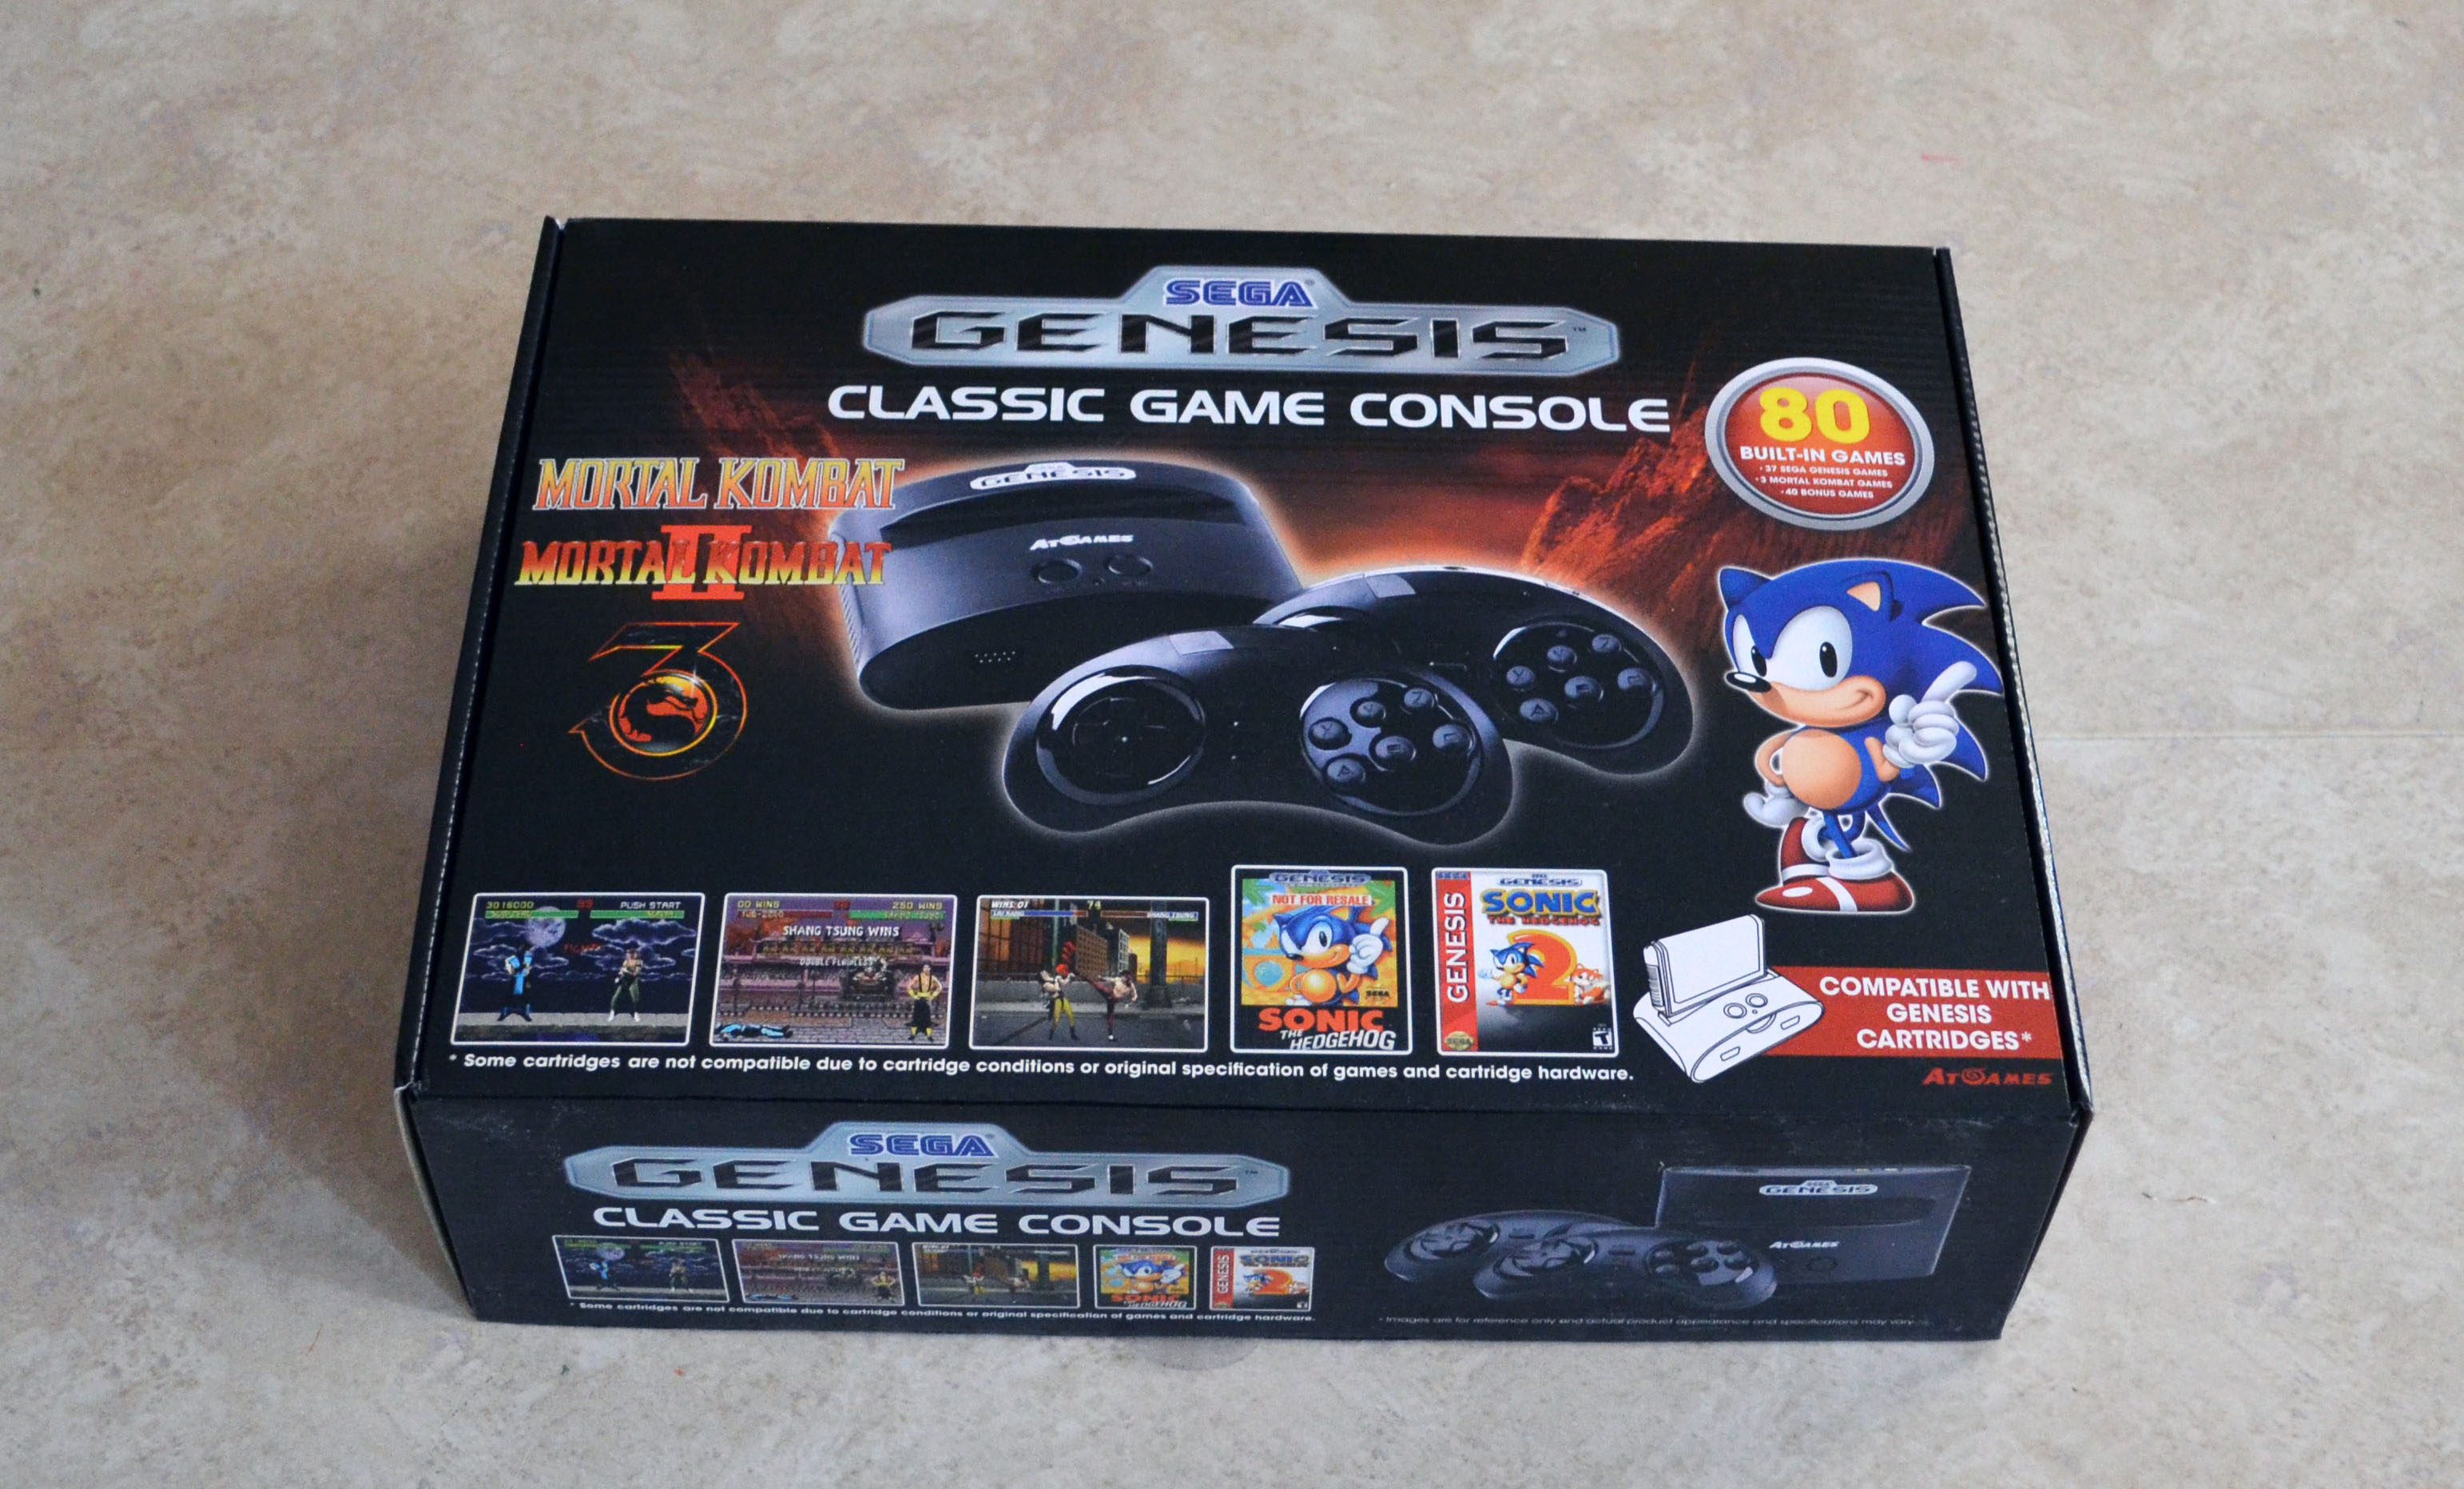 Sega genesis classic game console 2015 the official - Sega genesis classic console with built in games ...